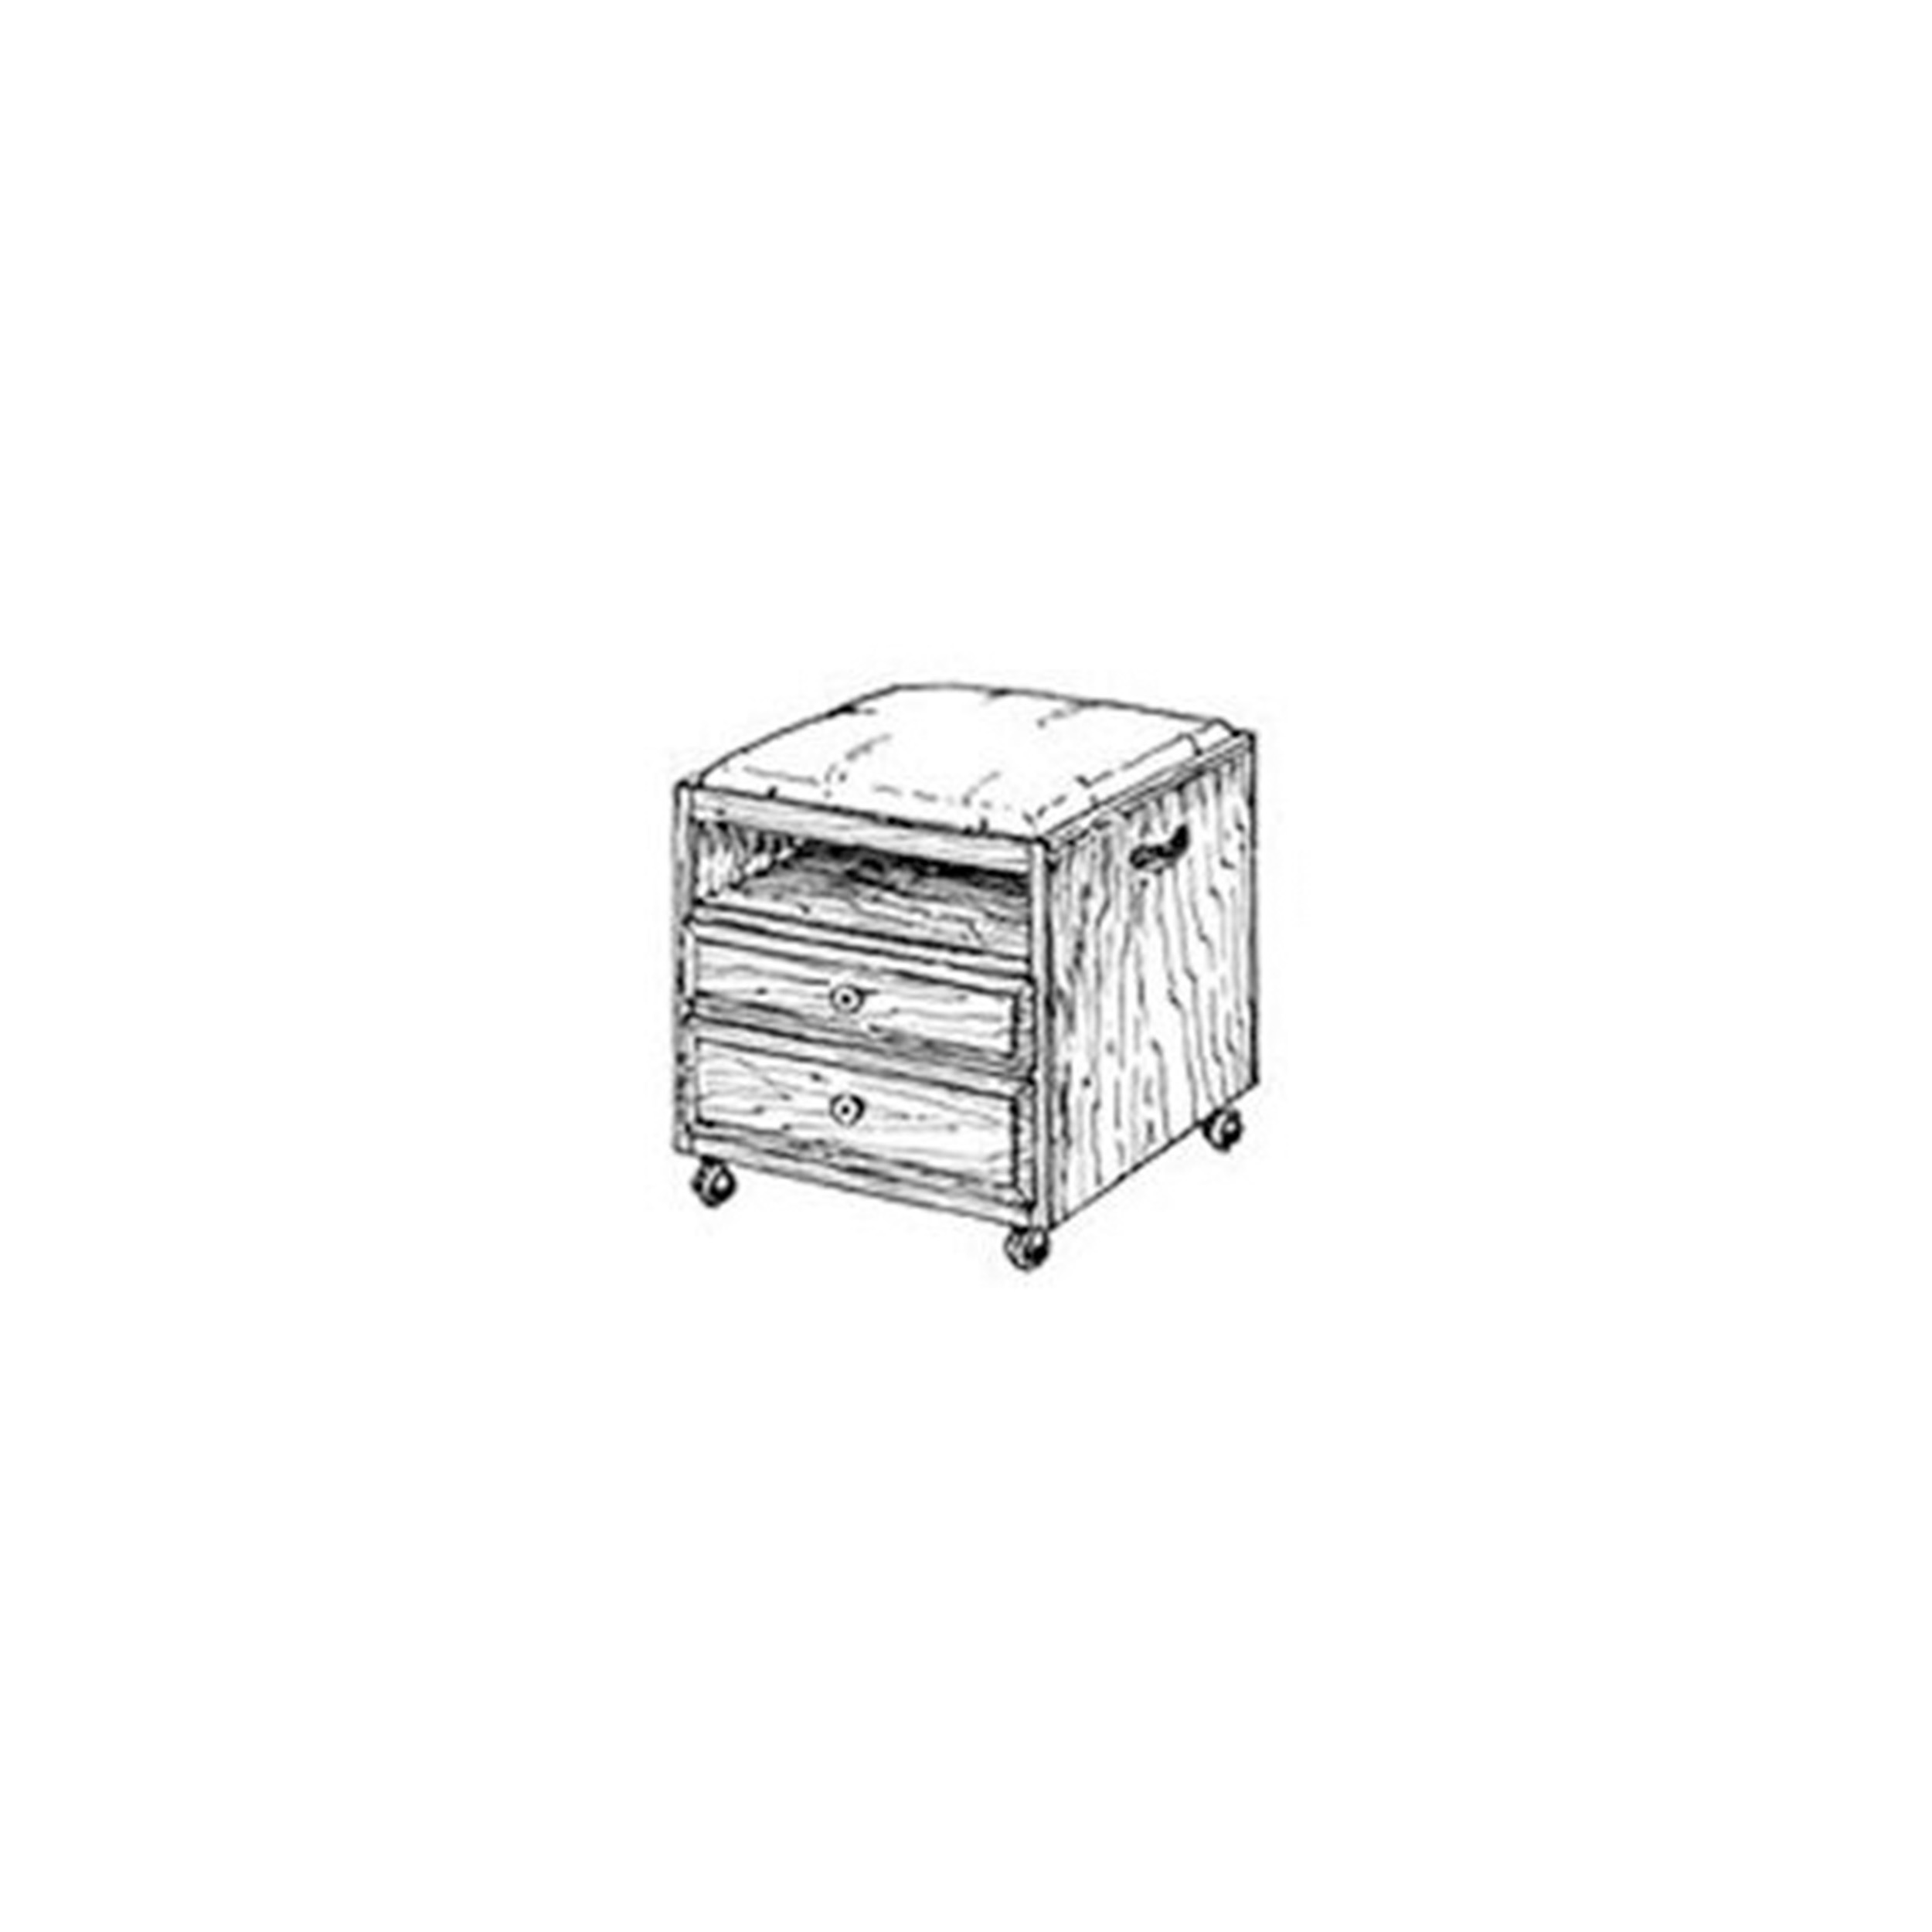 Woodworking Project Paper Plan to Build Rolling Sewing Box